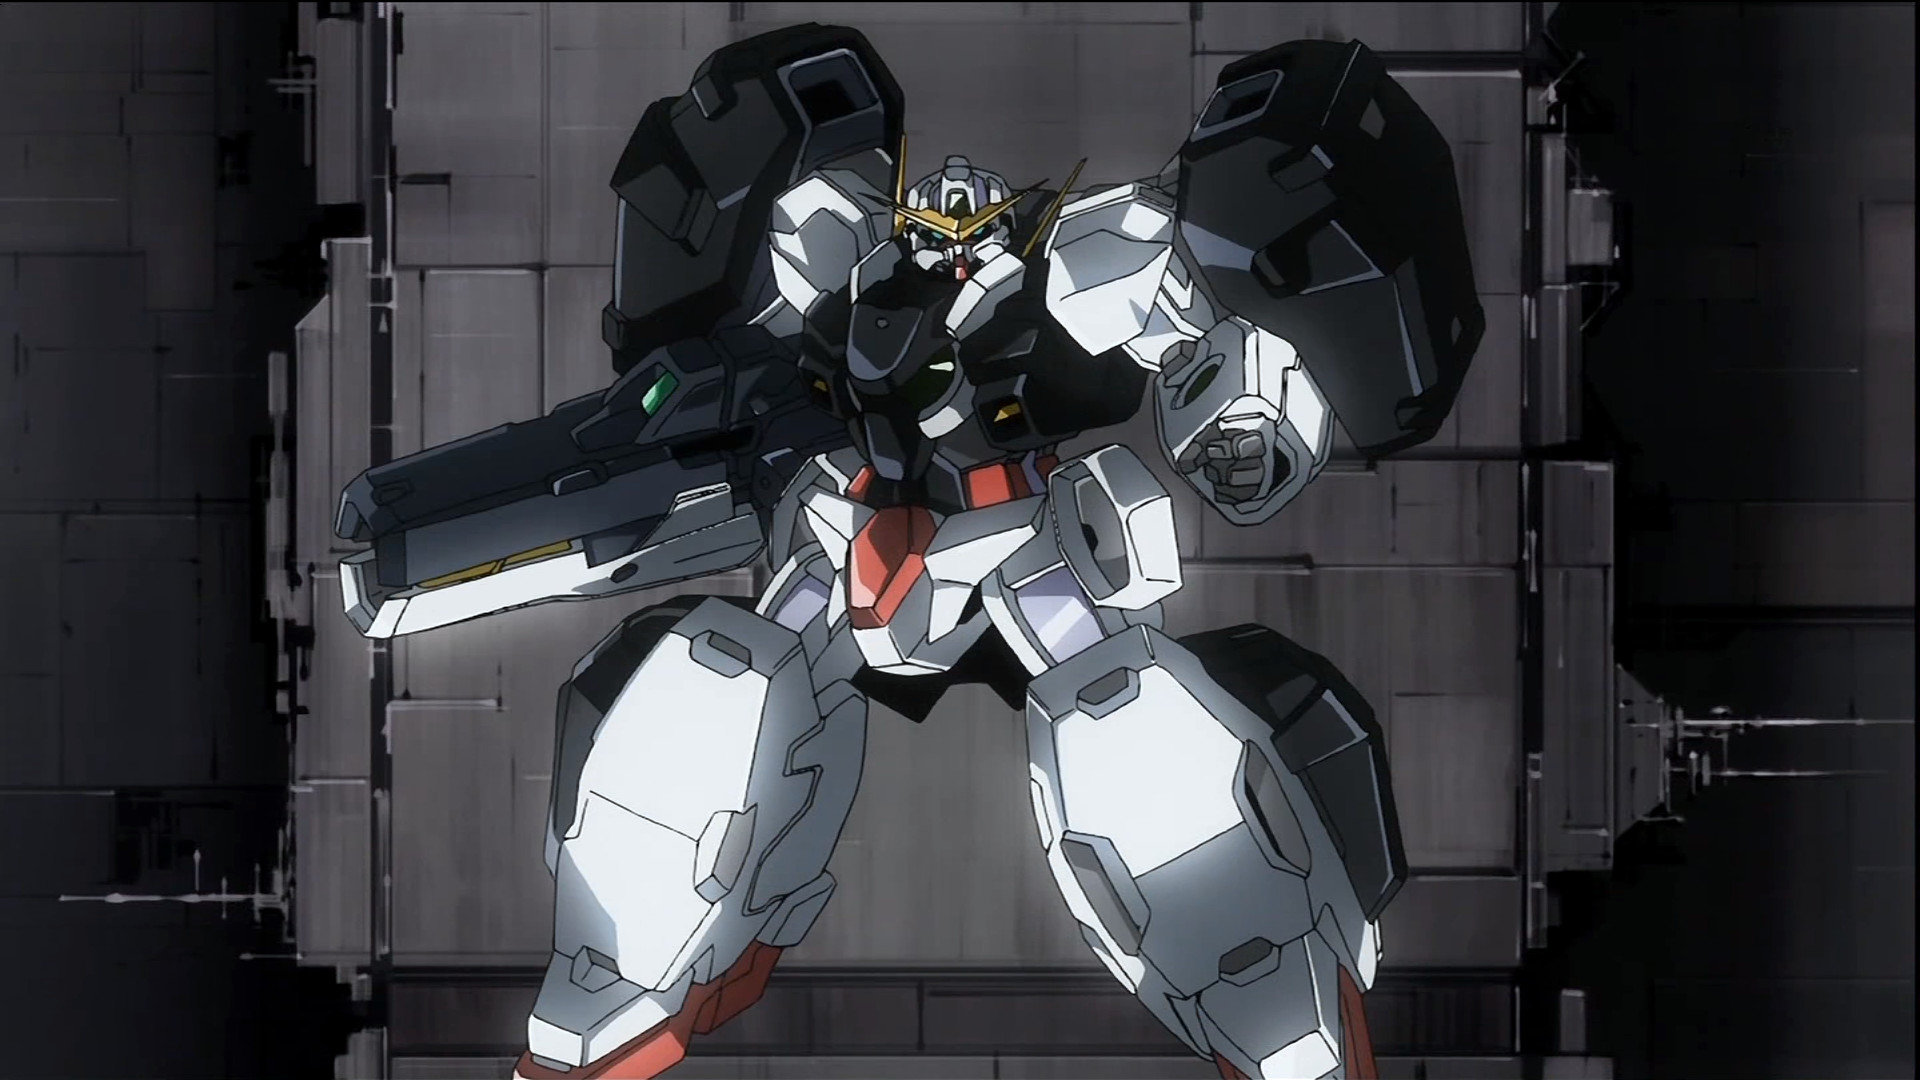 Awesome Gundam free wallpaper ID:115138 for full hd desktop